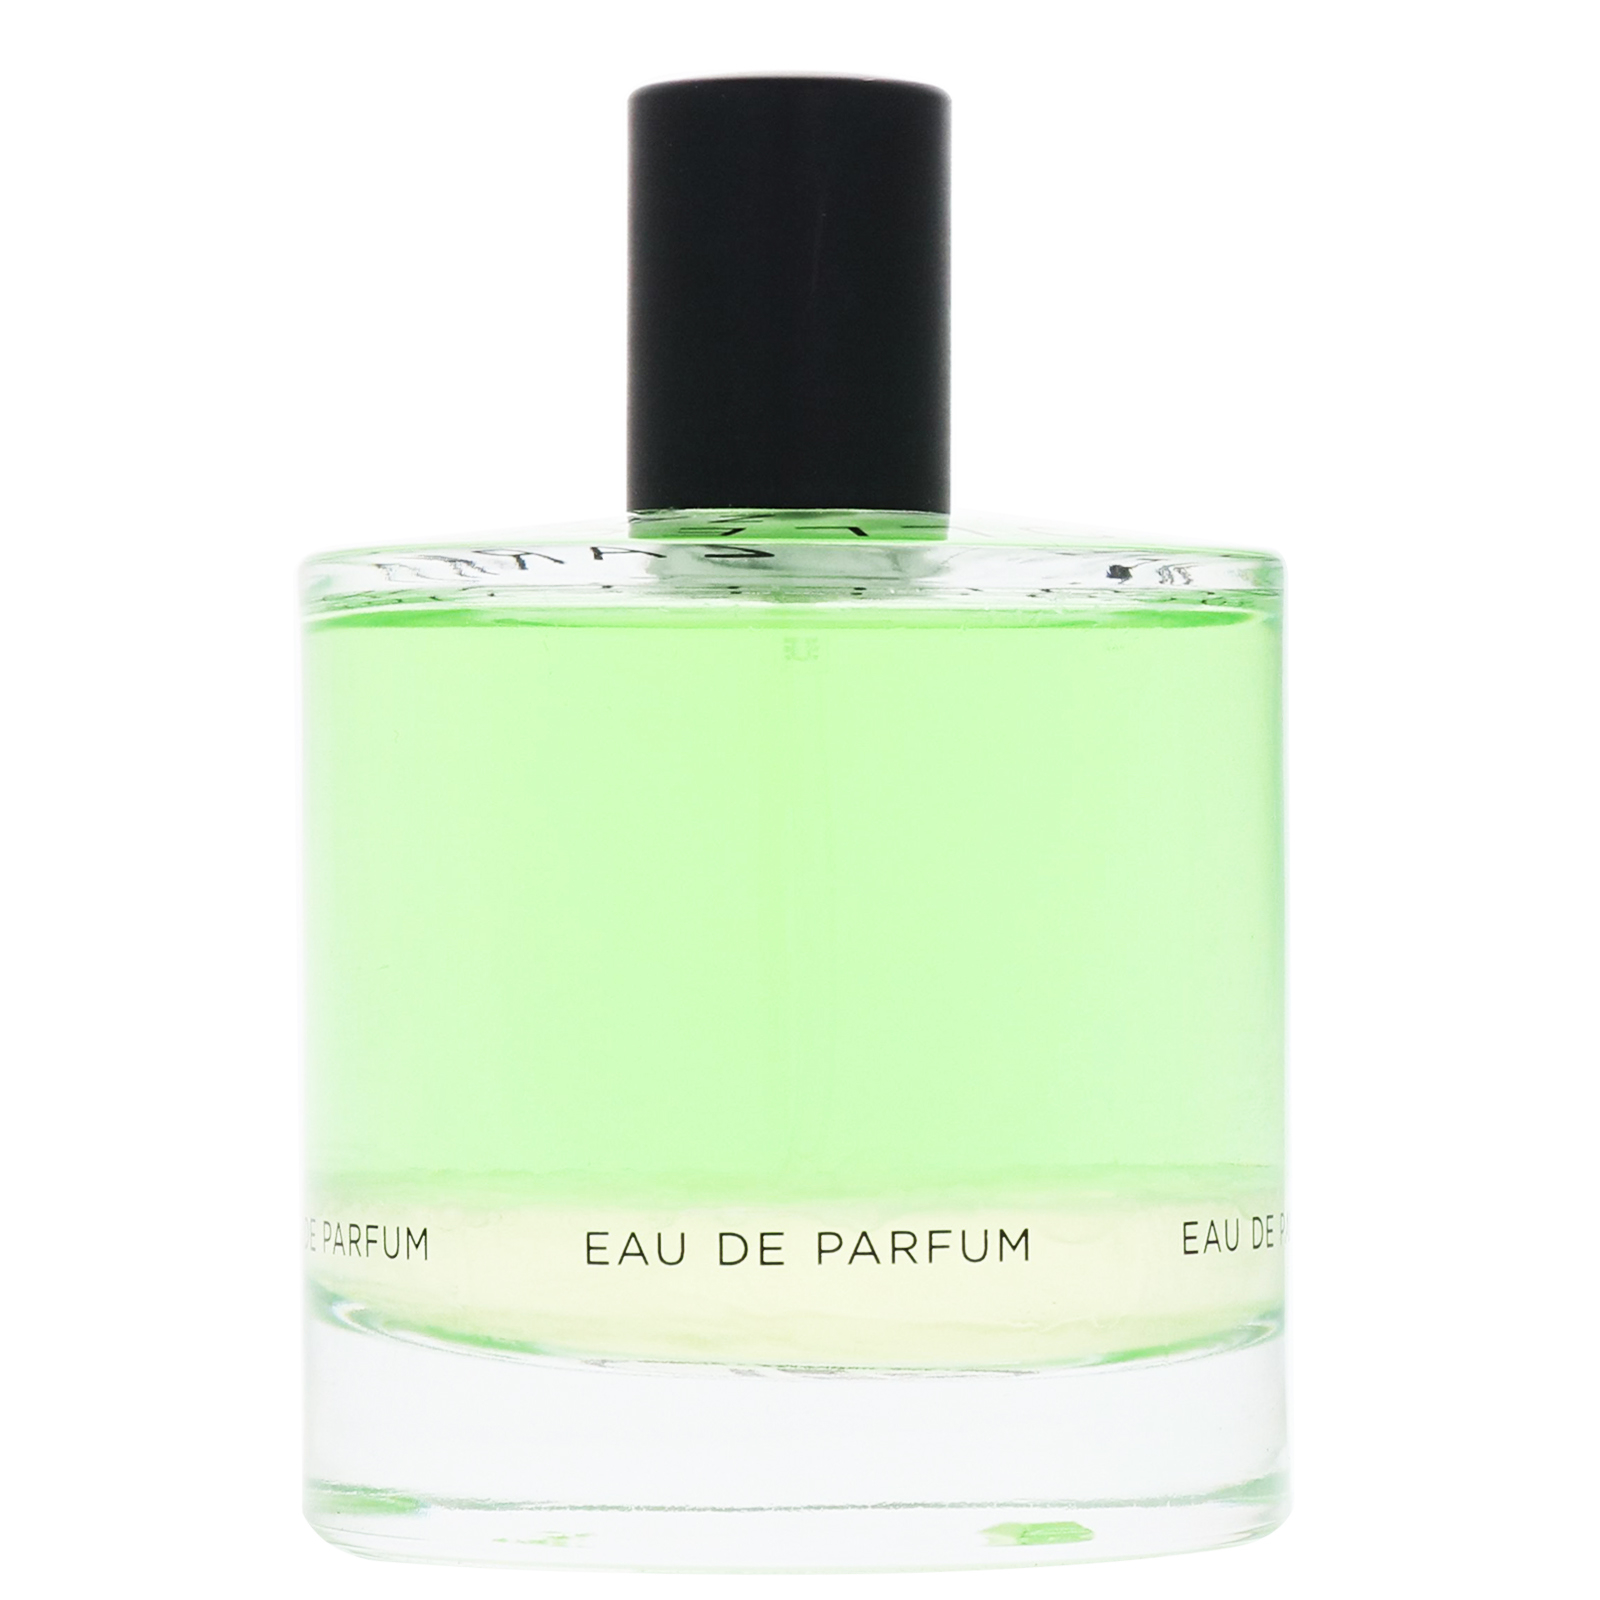 ZARKOPERFUME  Cloud Collection No.3 Eau de Parfum Spray 100ml